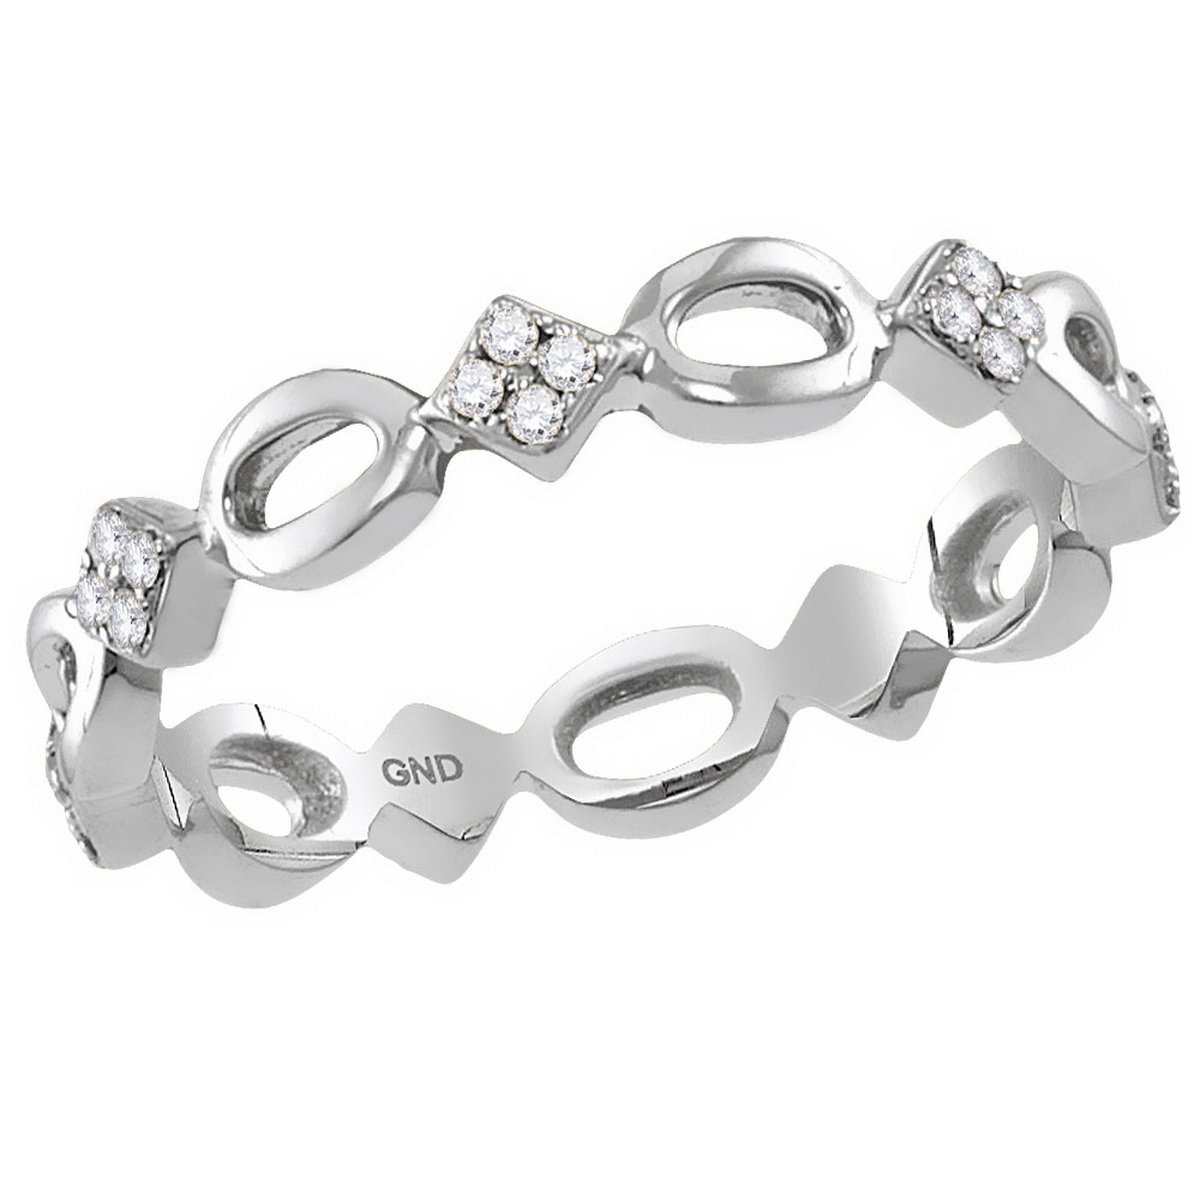 10kt White Gold Womens Round Diamond Square Cluster Stackable Band Ring 1/8 Cttw (I2-I3 clarity; H-I color)